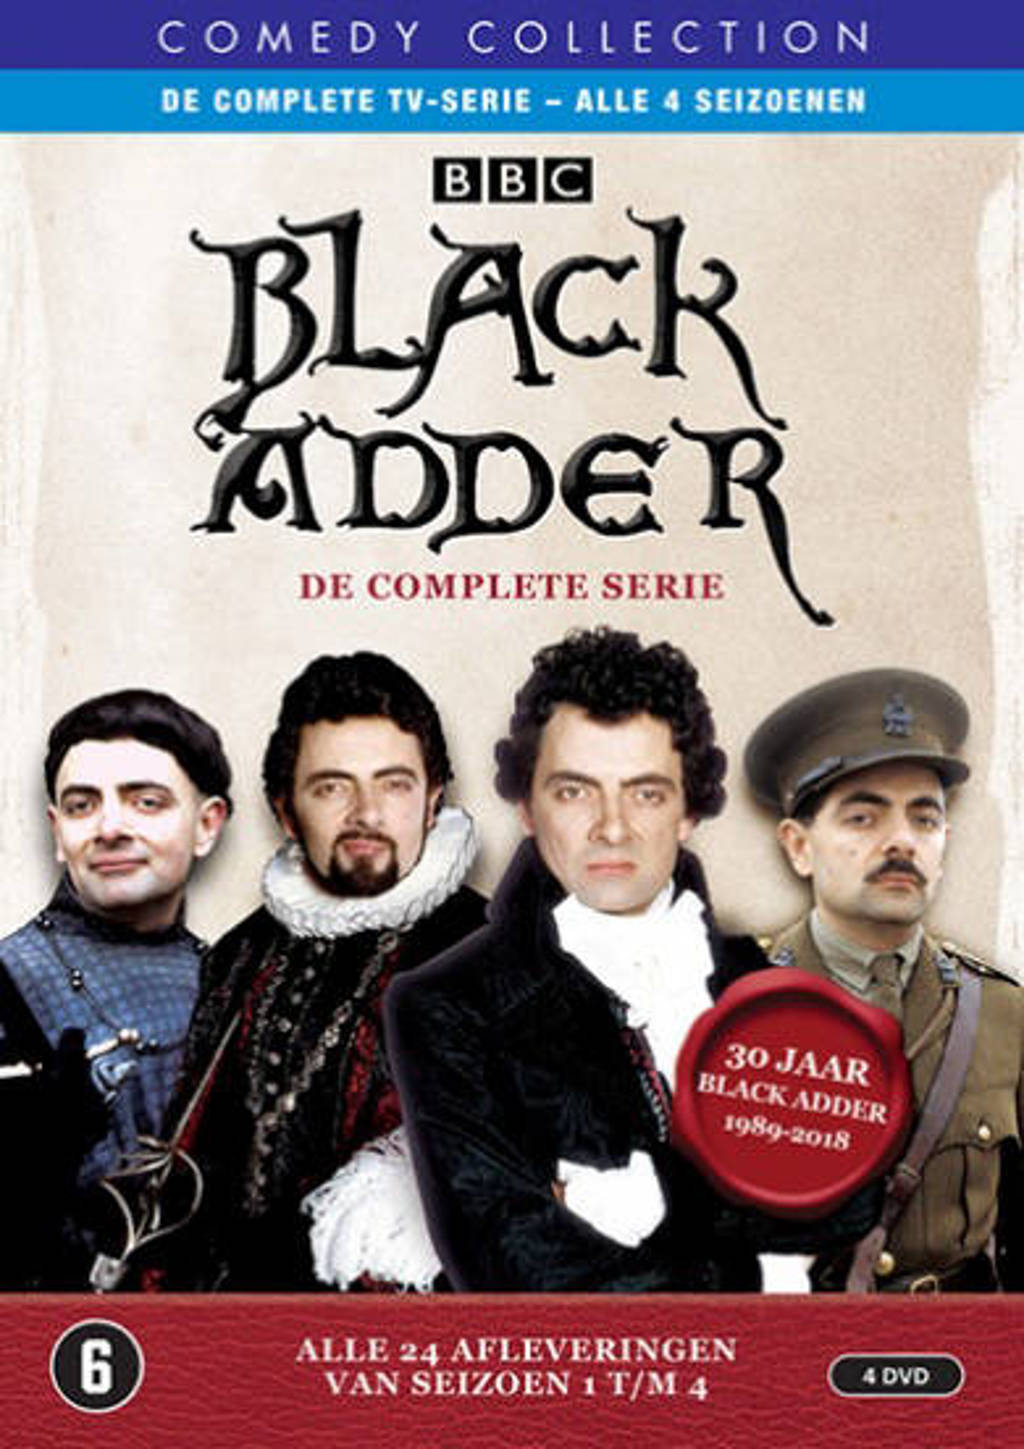 Black adder - The complete collection (DVD)